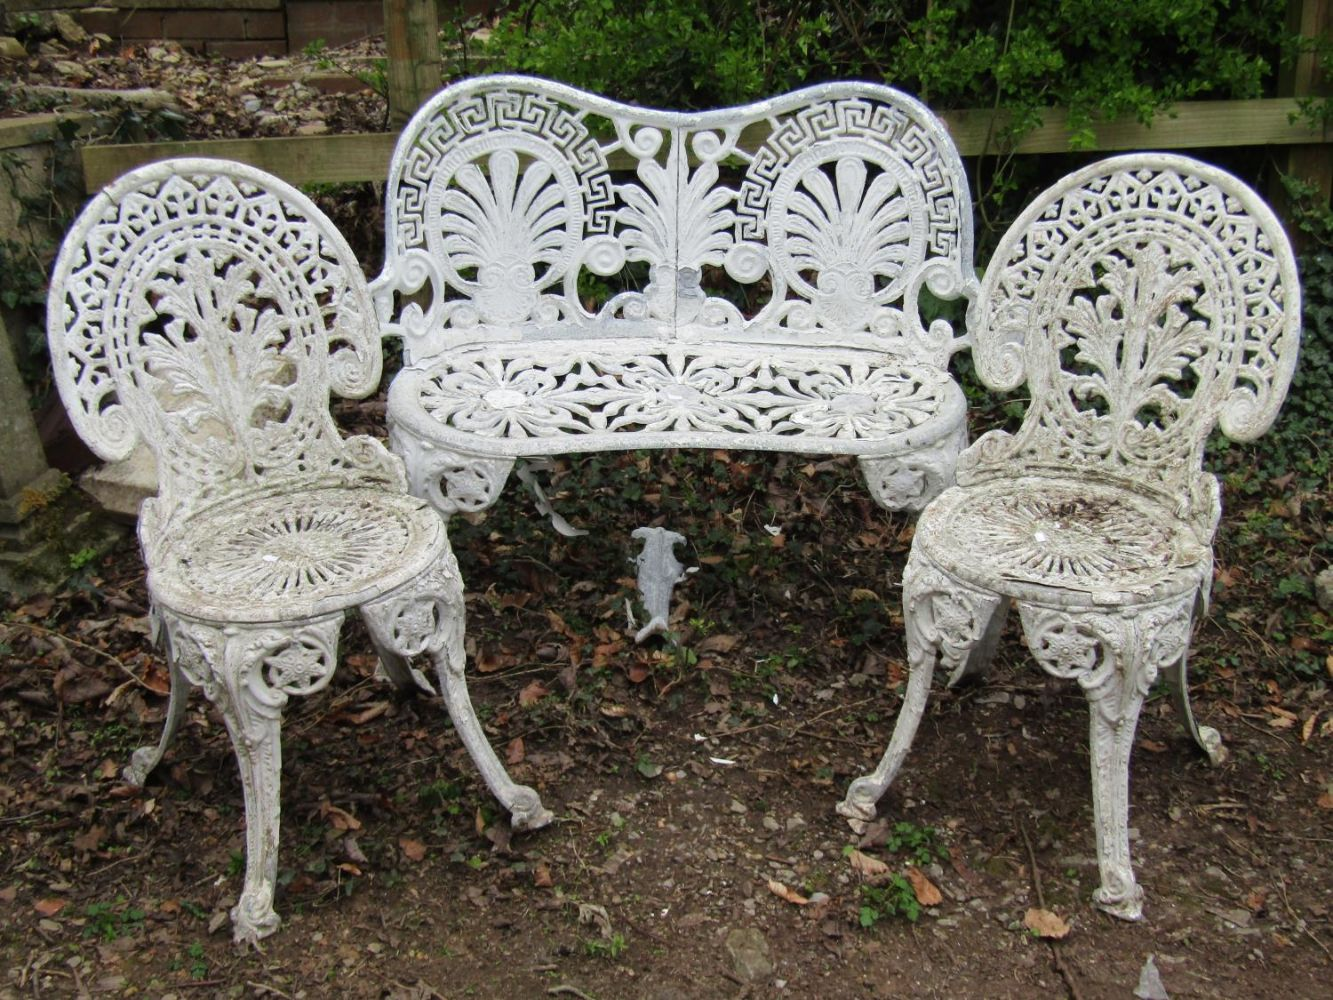 Specialist Garden Sale, Approx 600 lots of Garden Antiques and later Reclaimed Gardenalia